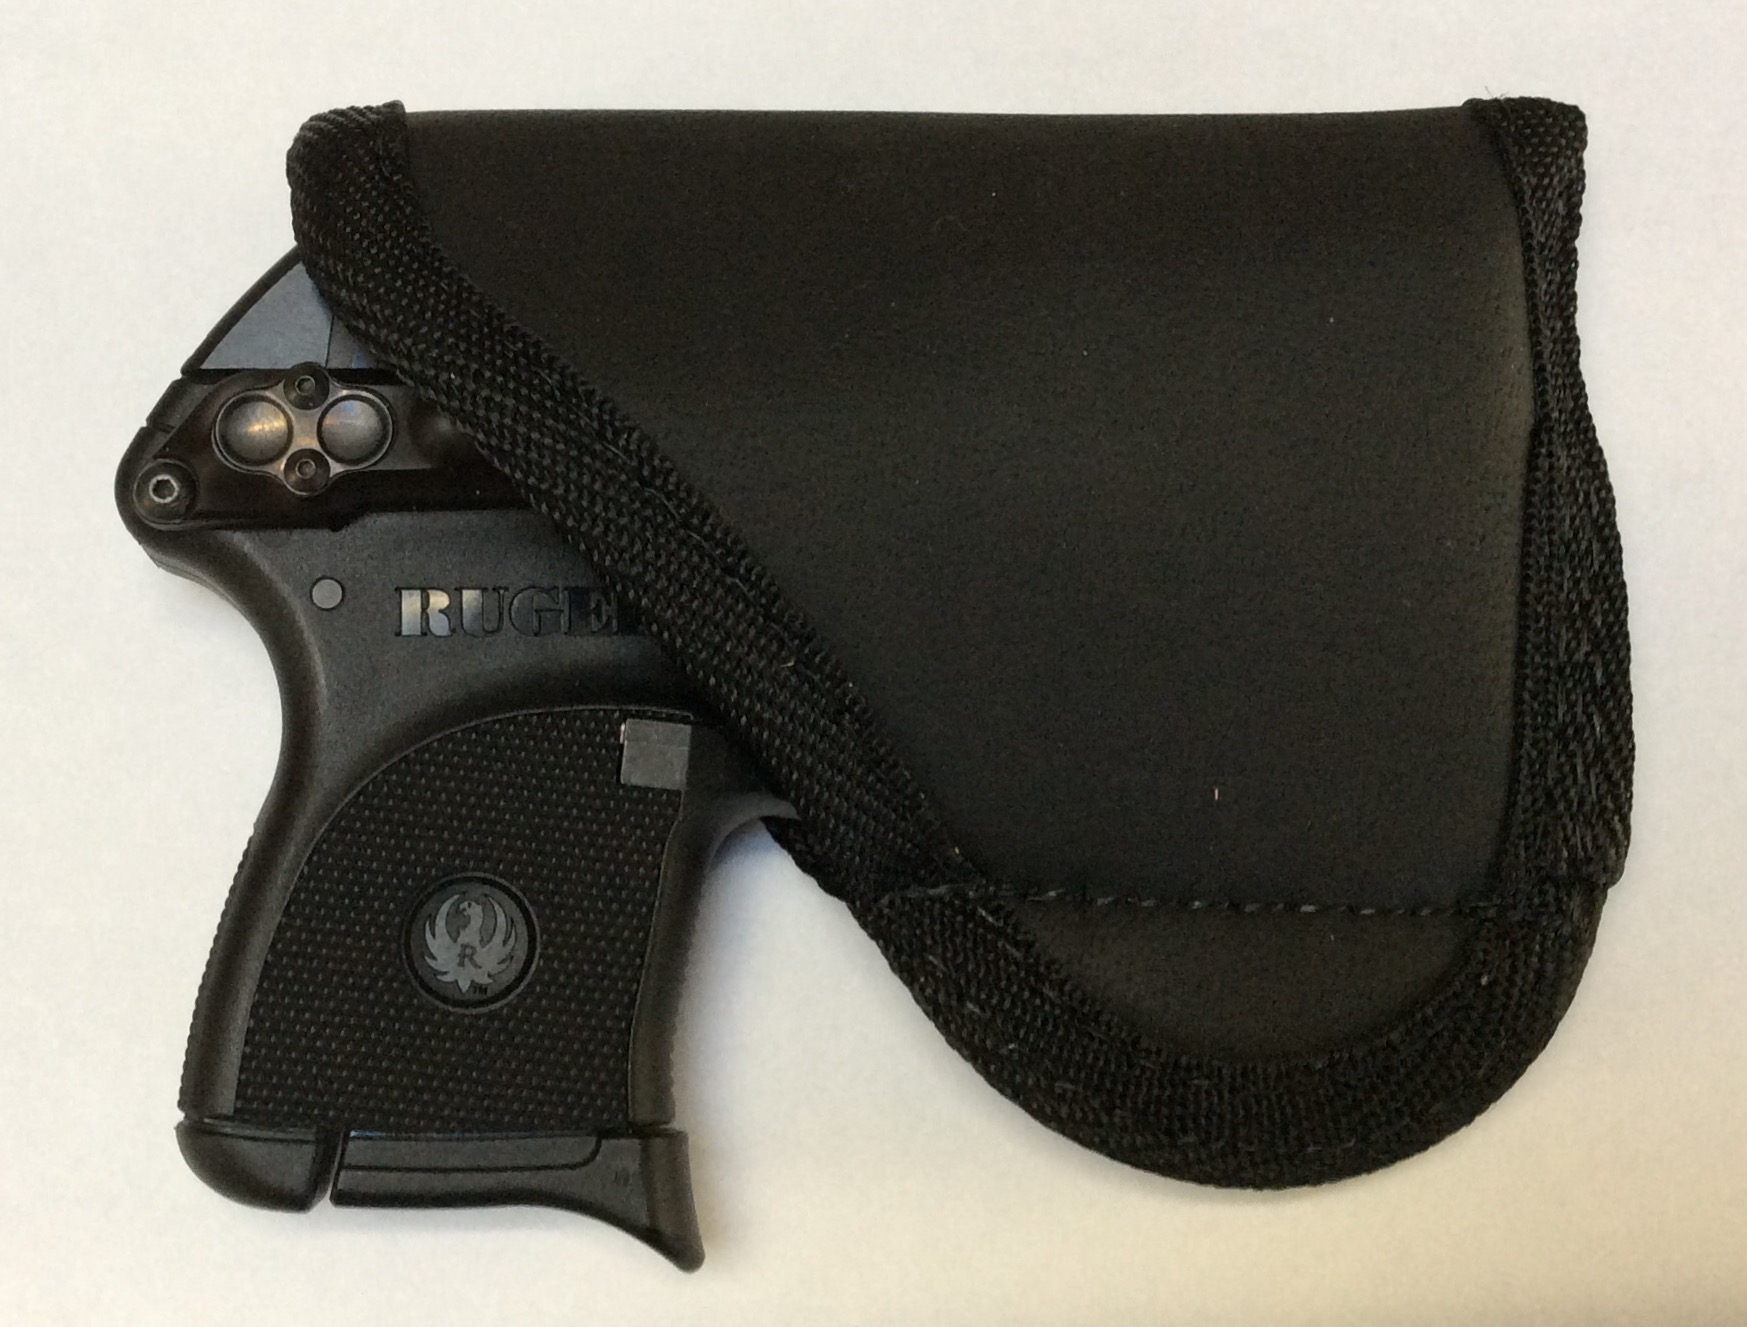 Ruger LCP Custom Pocket Holster - Hank's Holster Review